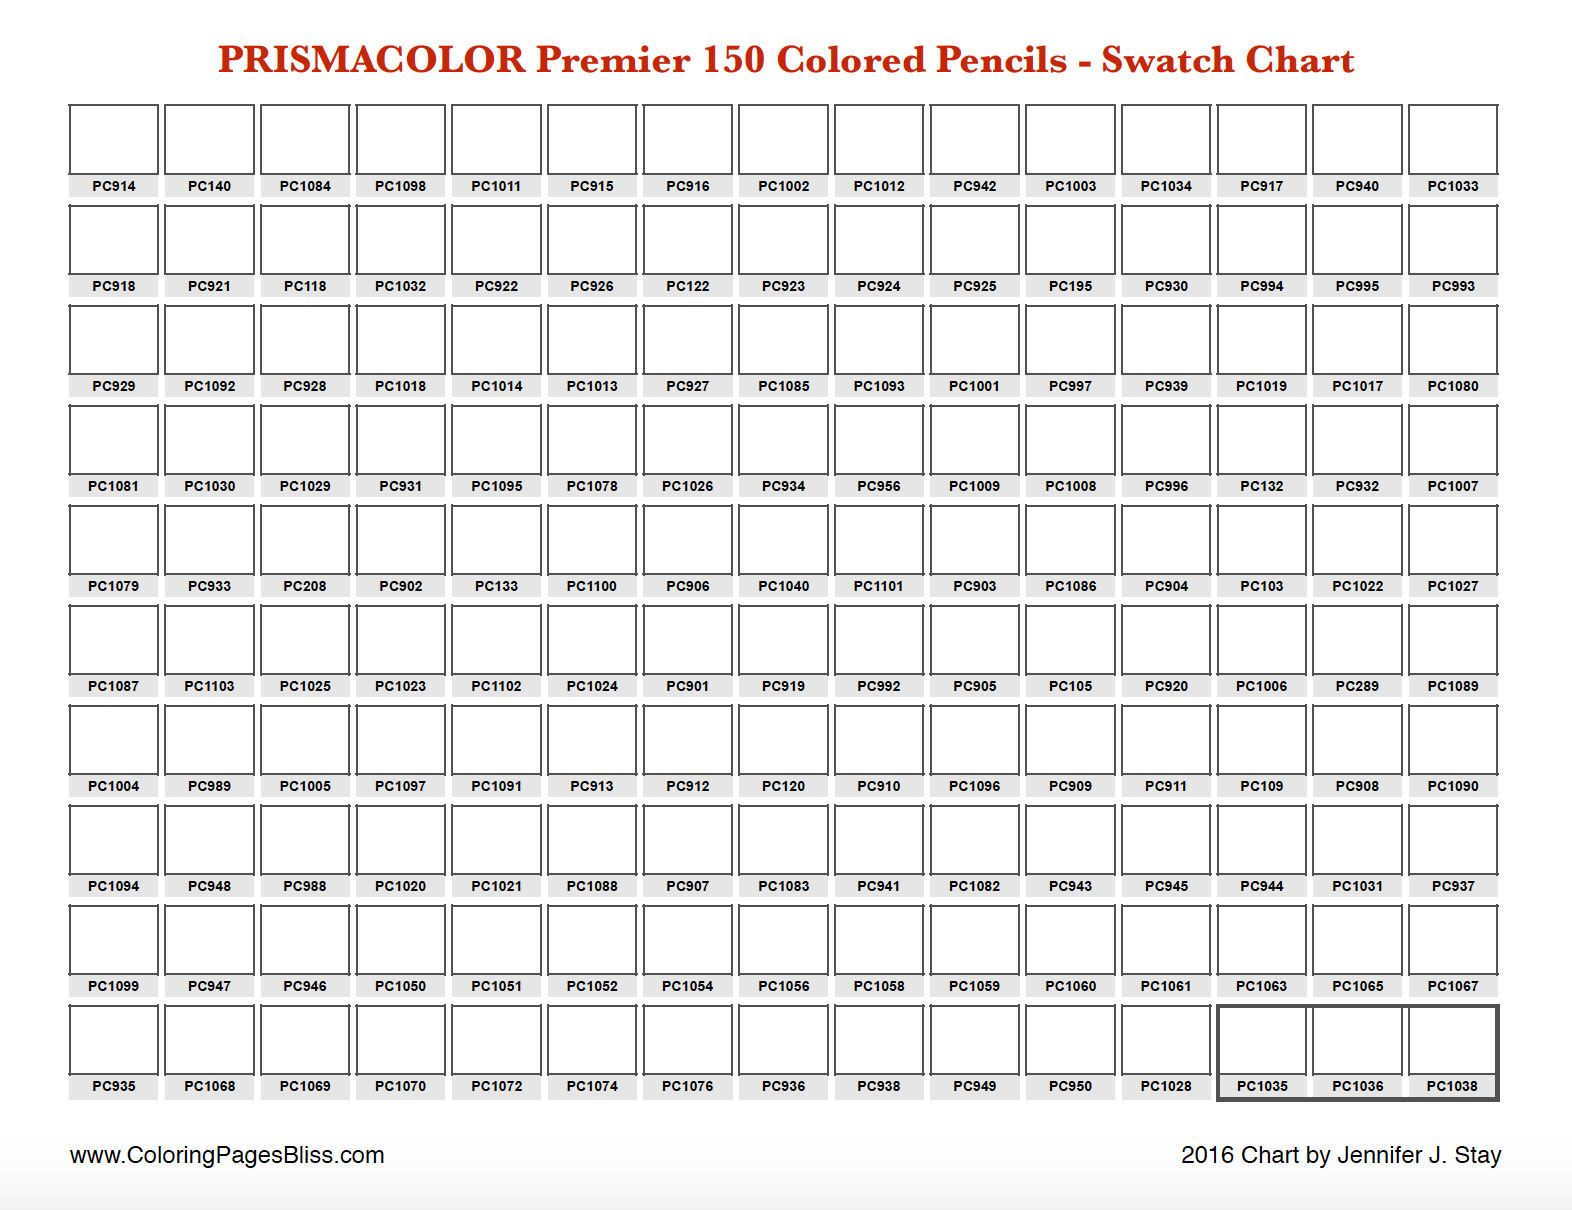 Prismacolor premier swatch chart also adult coloring pages in color pencil ideas pinterest rh